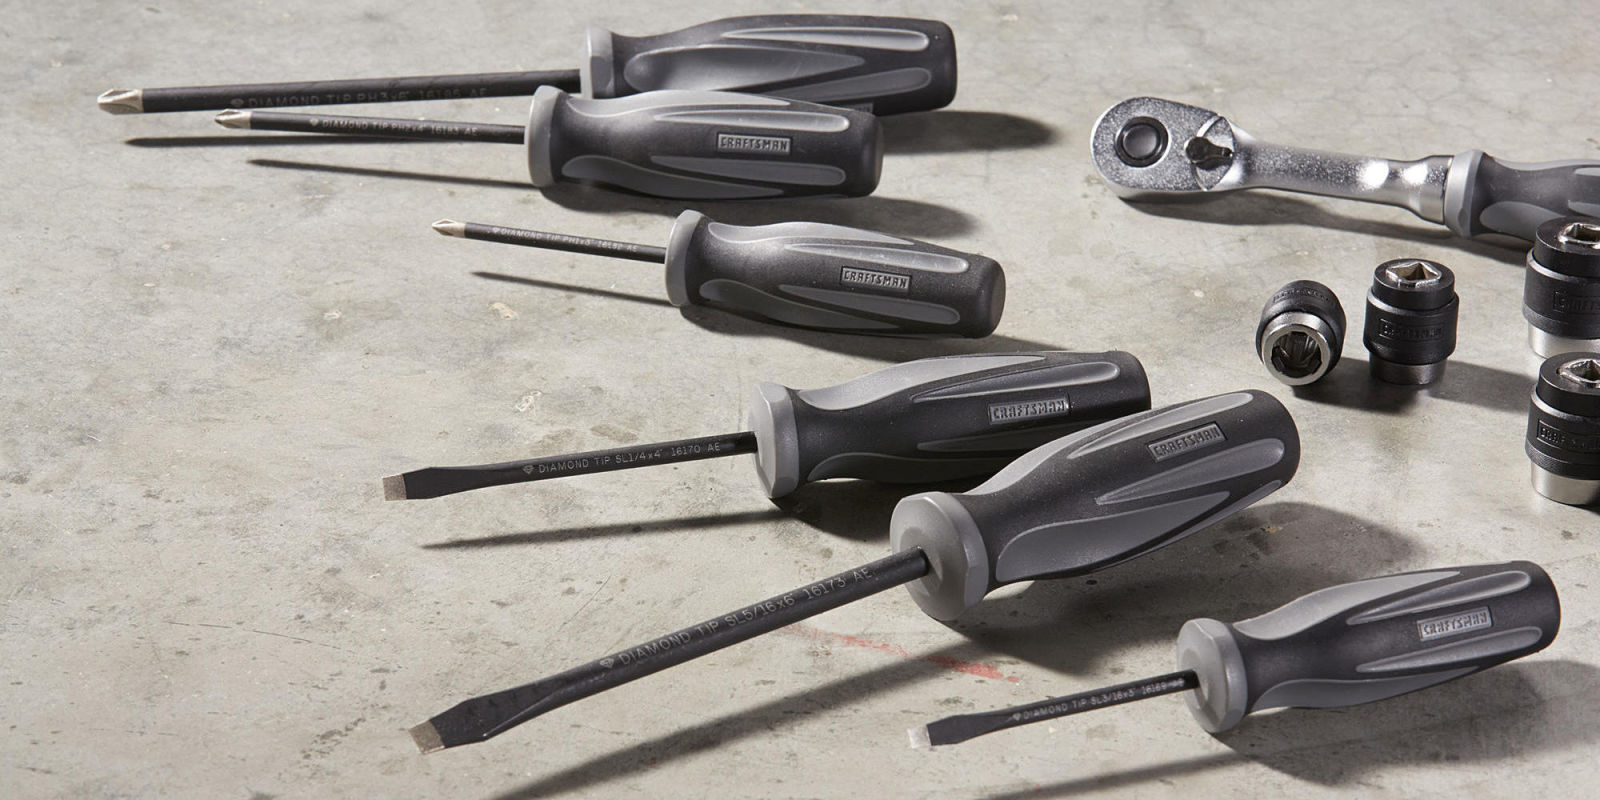 8 best hand tool sets in 2017 tool sets and kits for the home